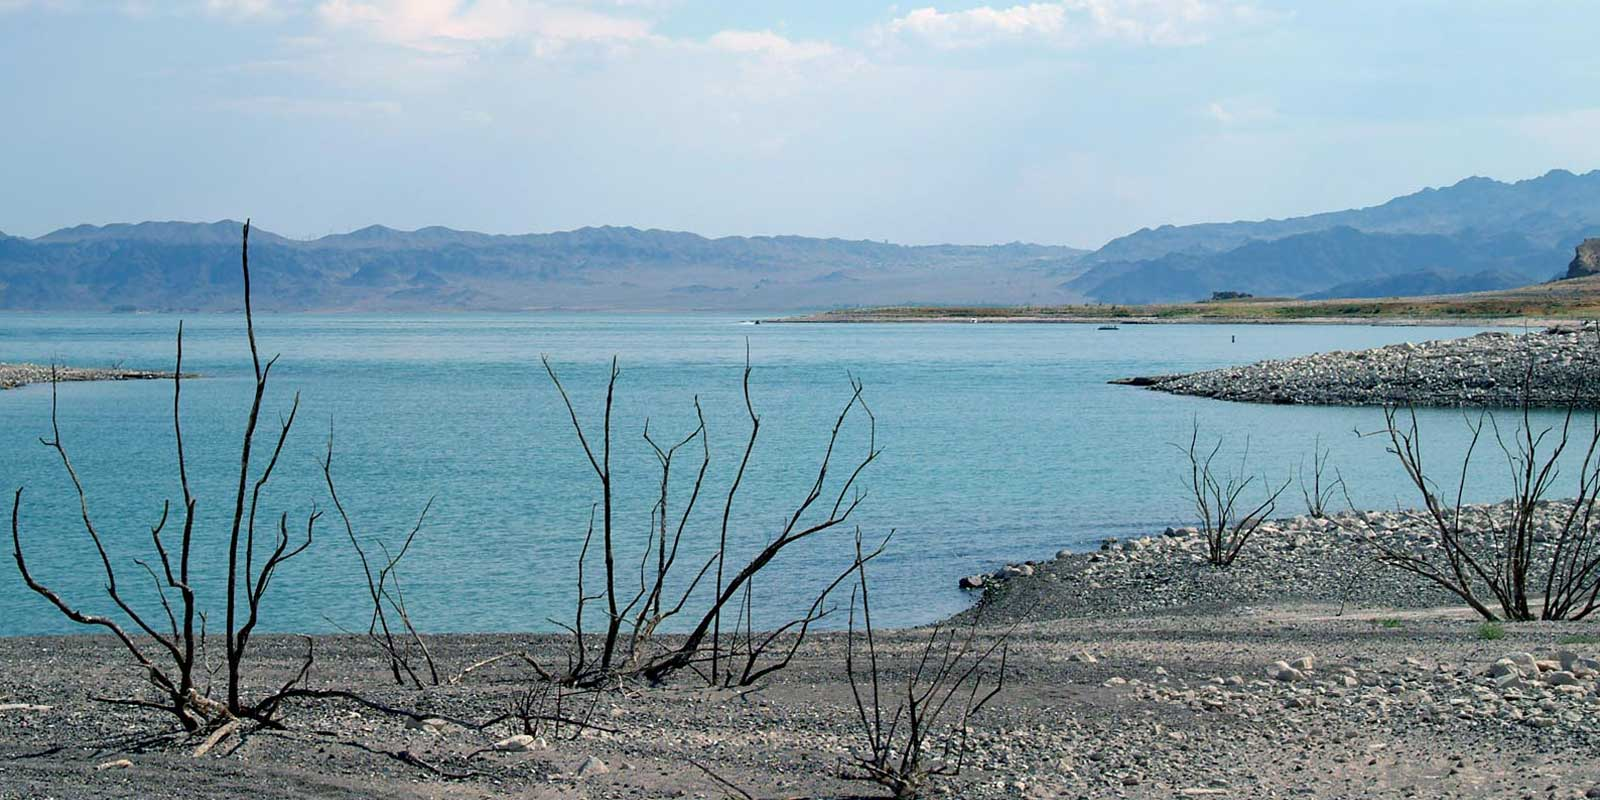 Landscape photo of the barren shoreline at Lake Mead during a drought.